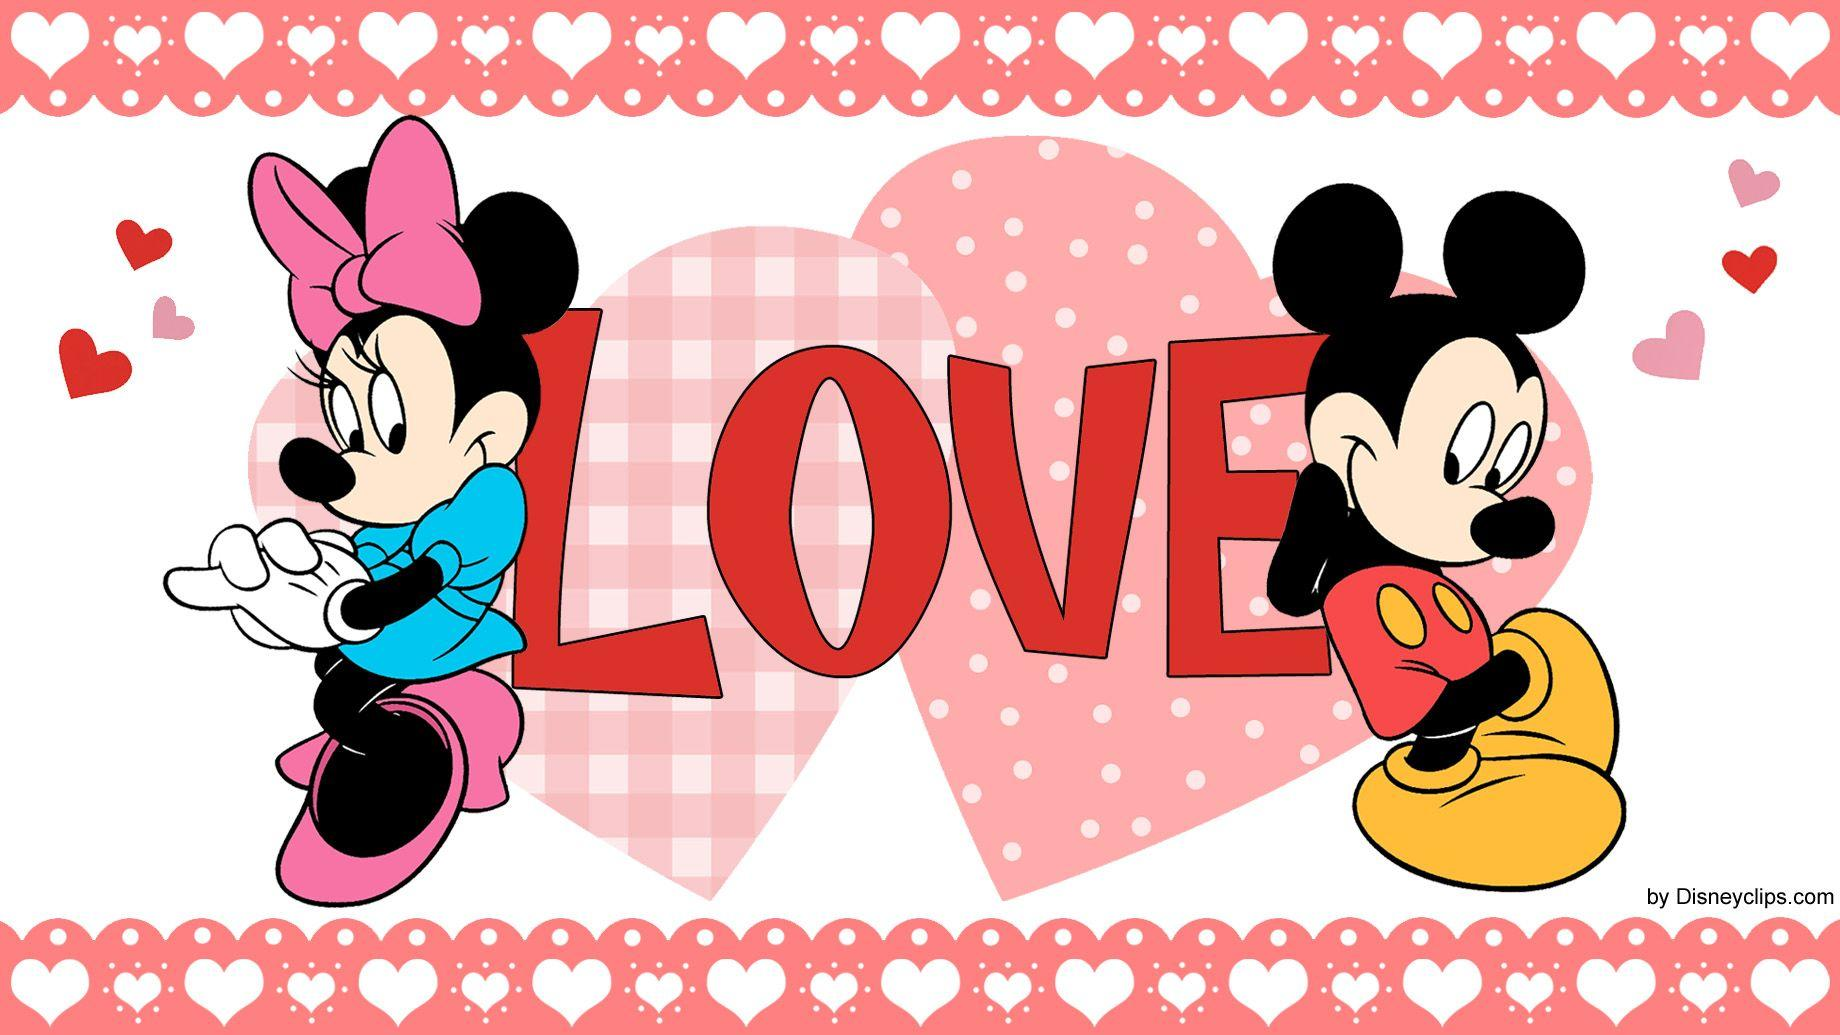 Mickey & Minnie Mouse 'Love' Wallpapers